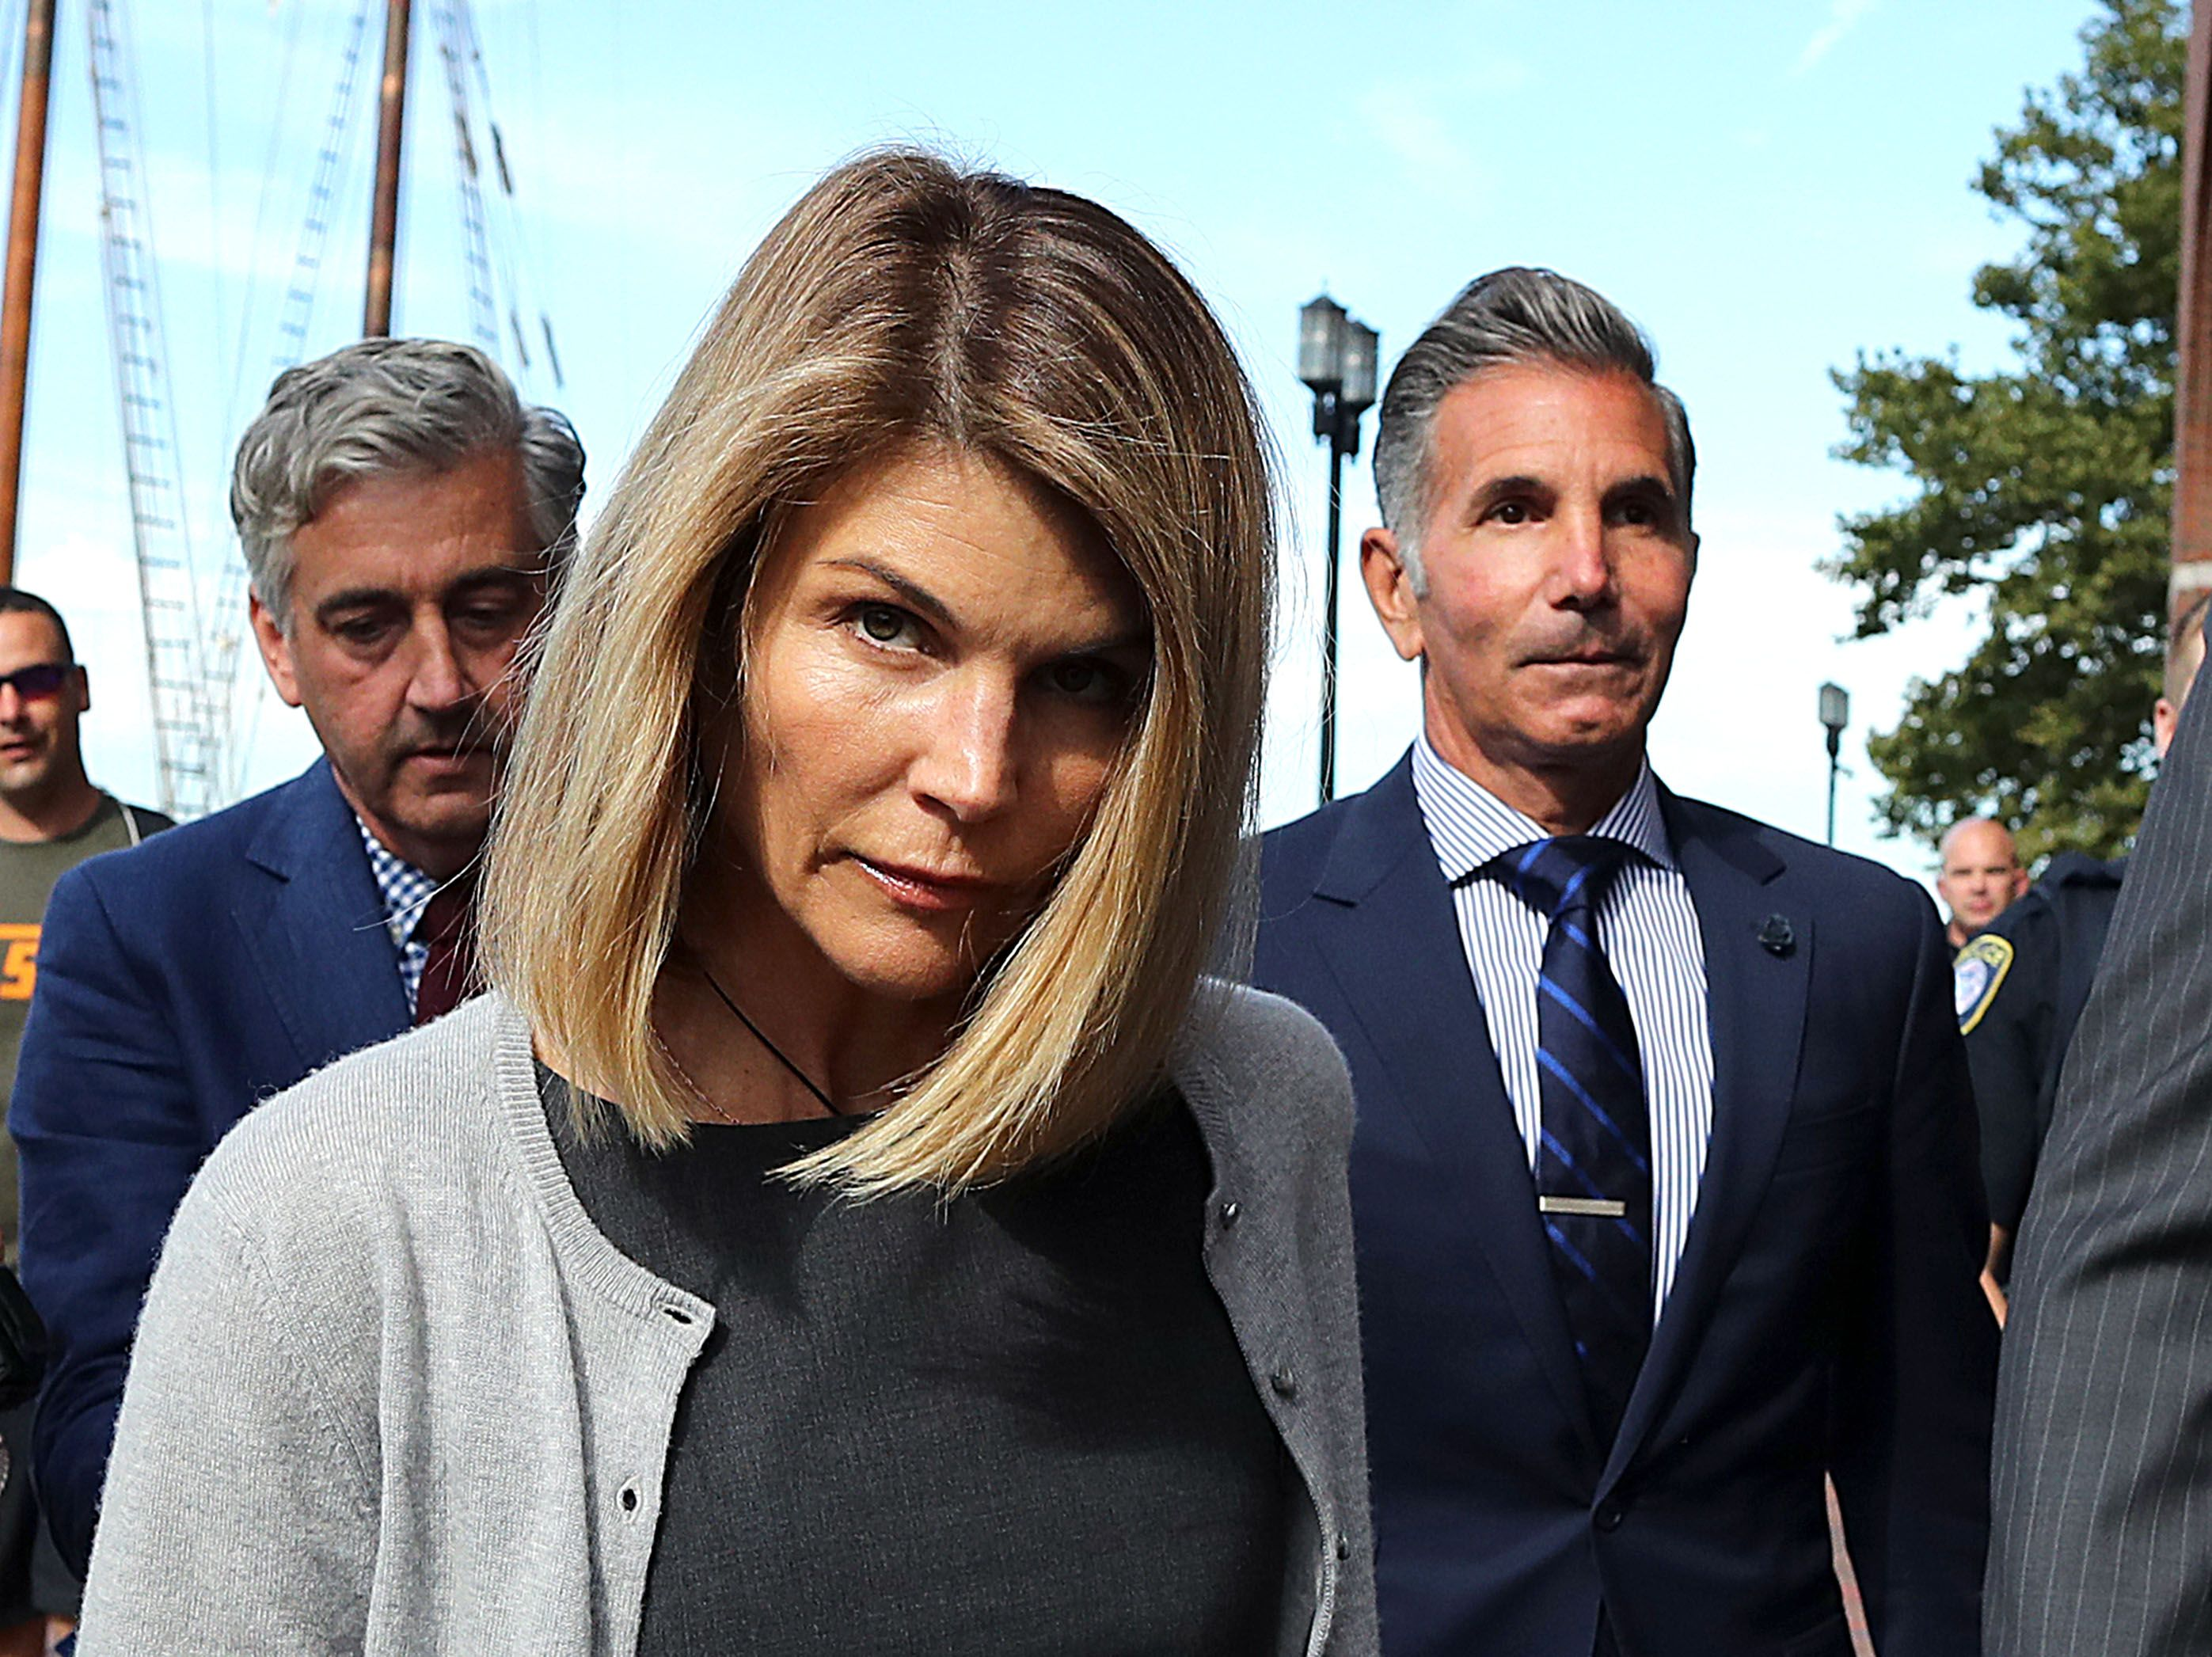 Lori Loughlin and Mossimo Giannulli as they left the John Joseph Moakley on August 27, 2019 | Photo: Getty Images